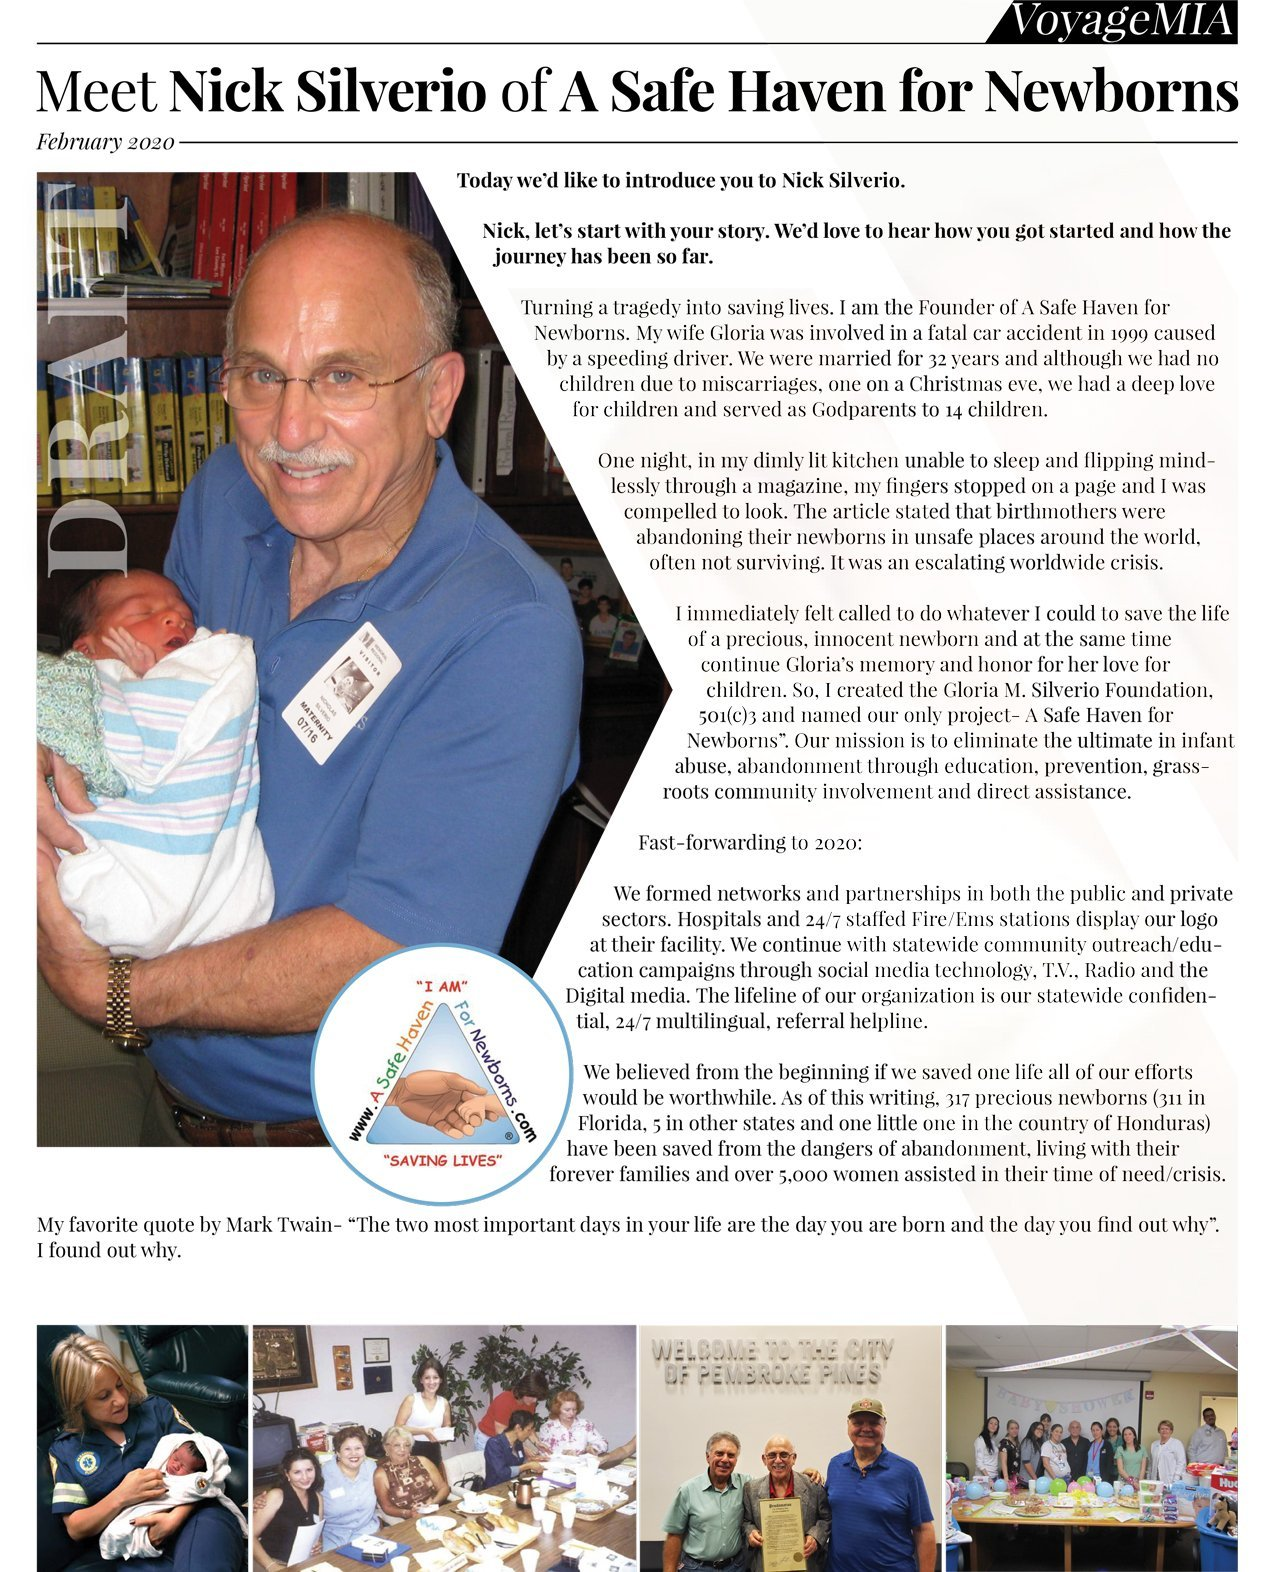 A Safe Haven For Newborns Voyage MIA news article